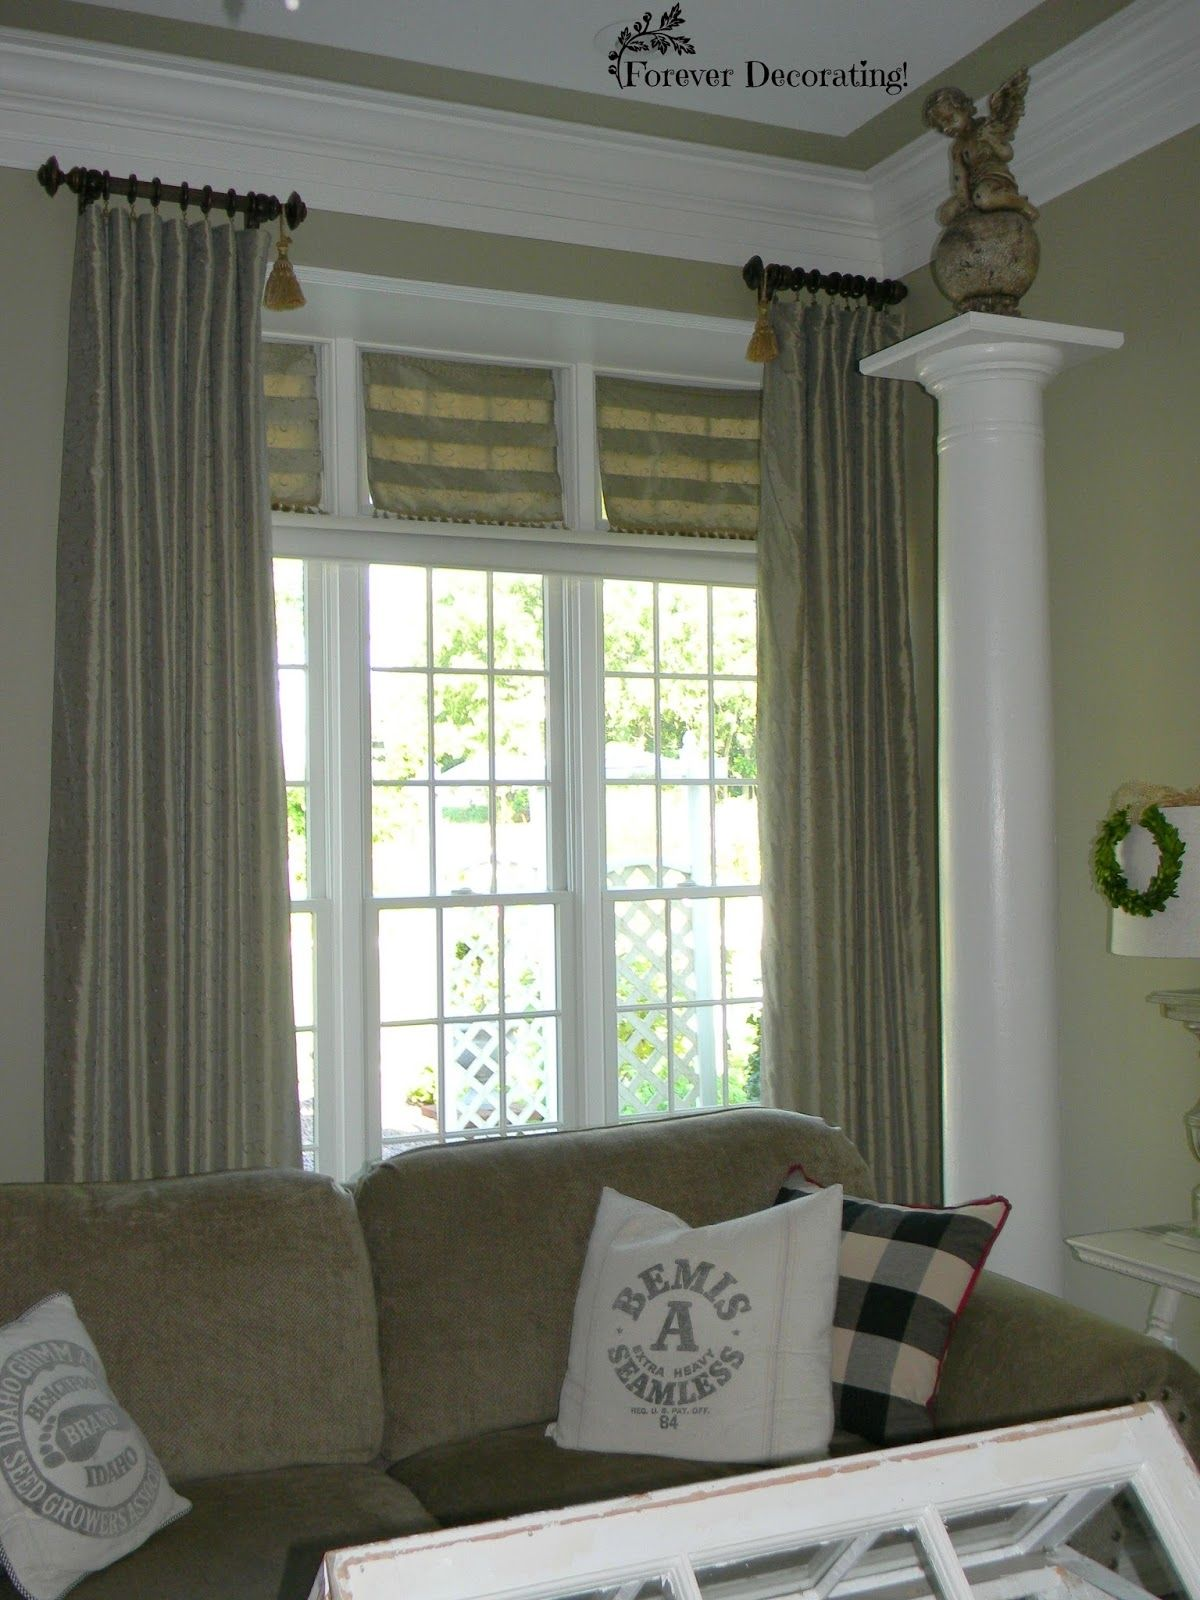 Curtains for windows with transoms realtagfo pinterest